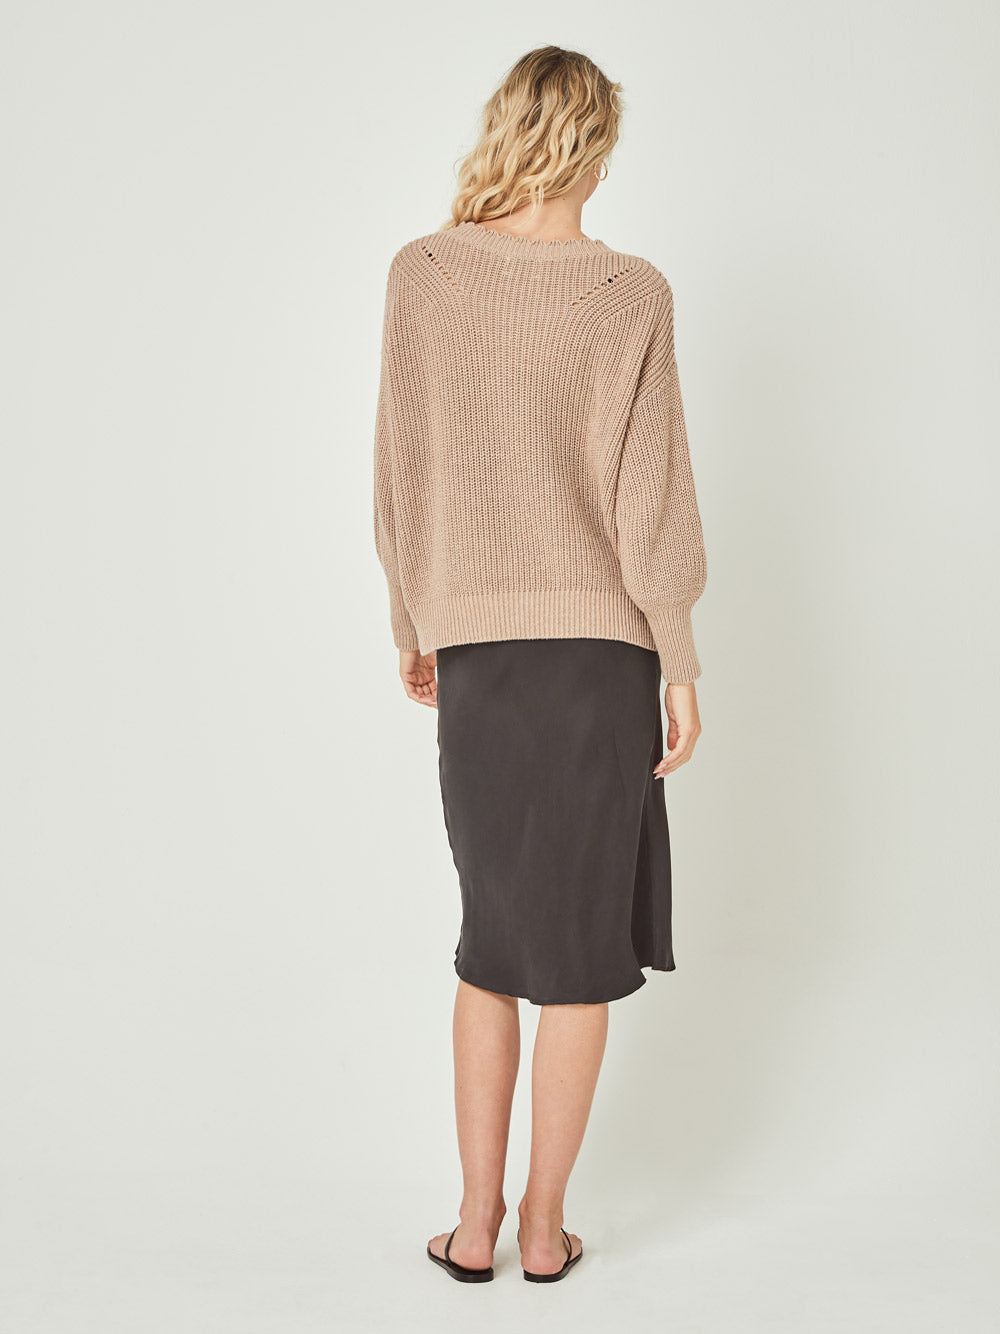 AUGUSTE THE LABEL Camino Knit